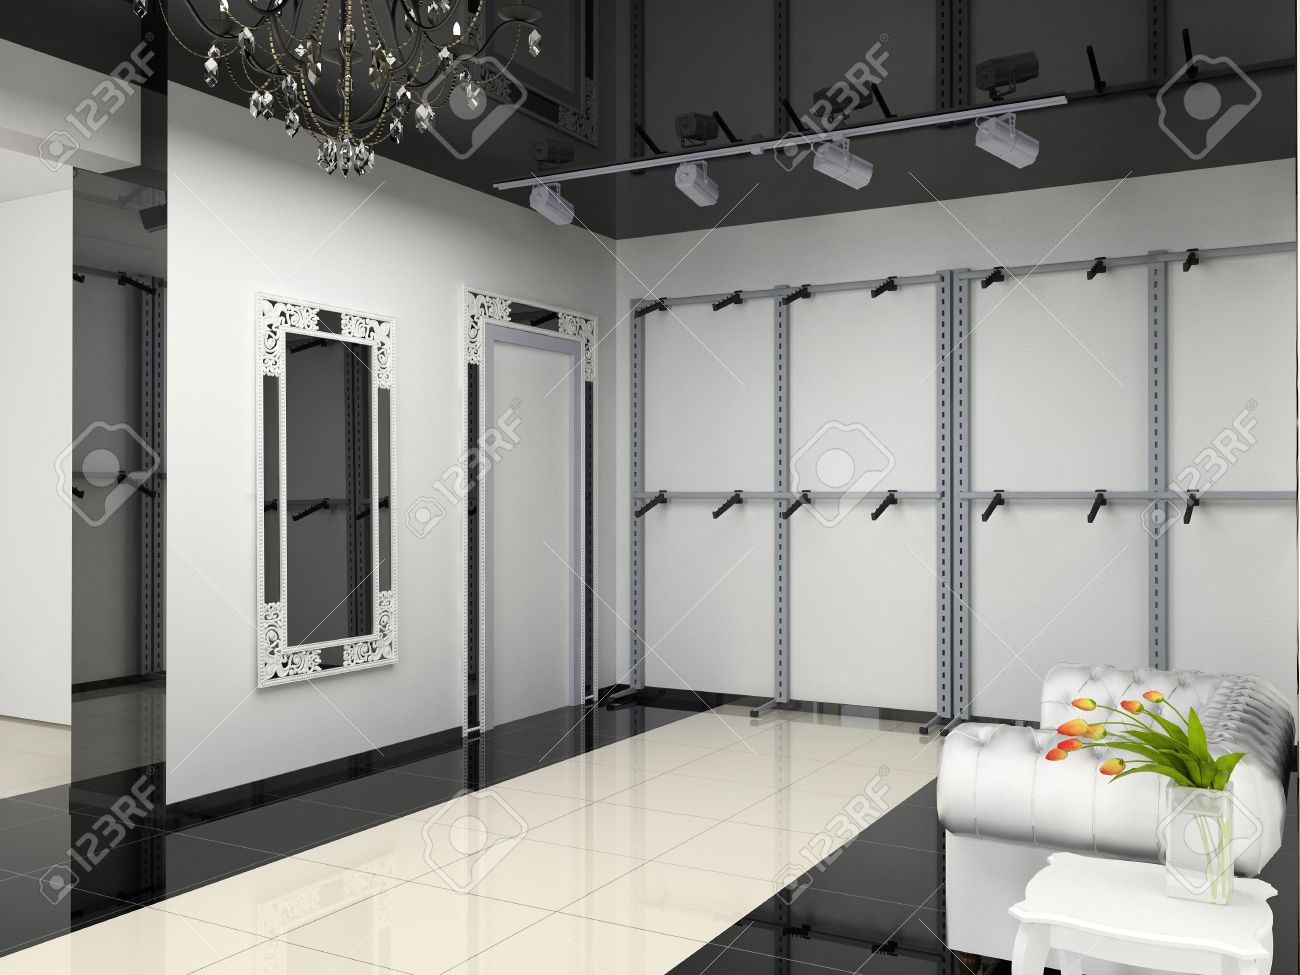 The Modern Shop Interior Design Project (3D Image) Stock Photo ...